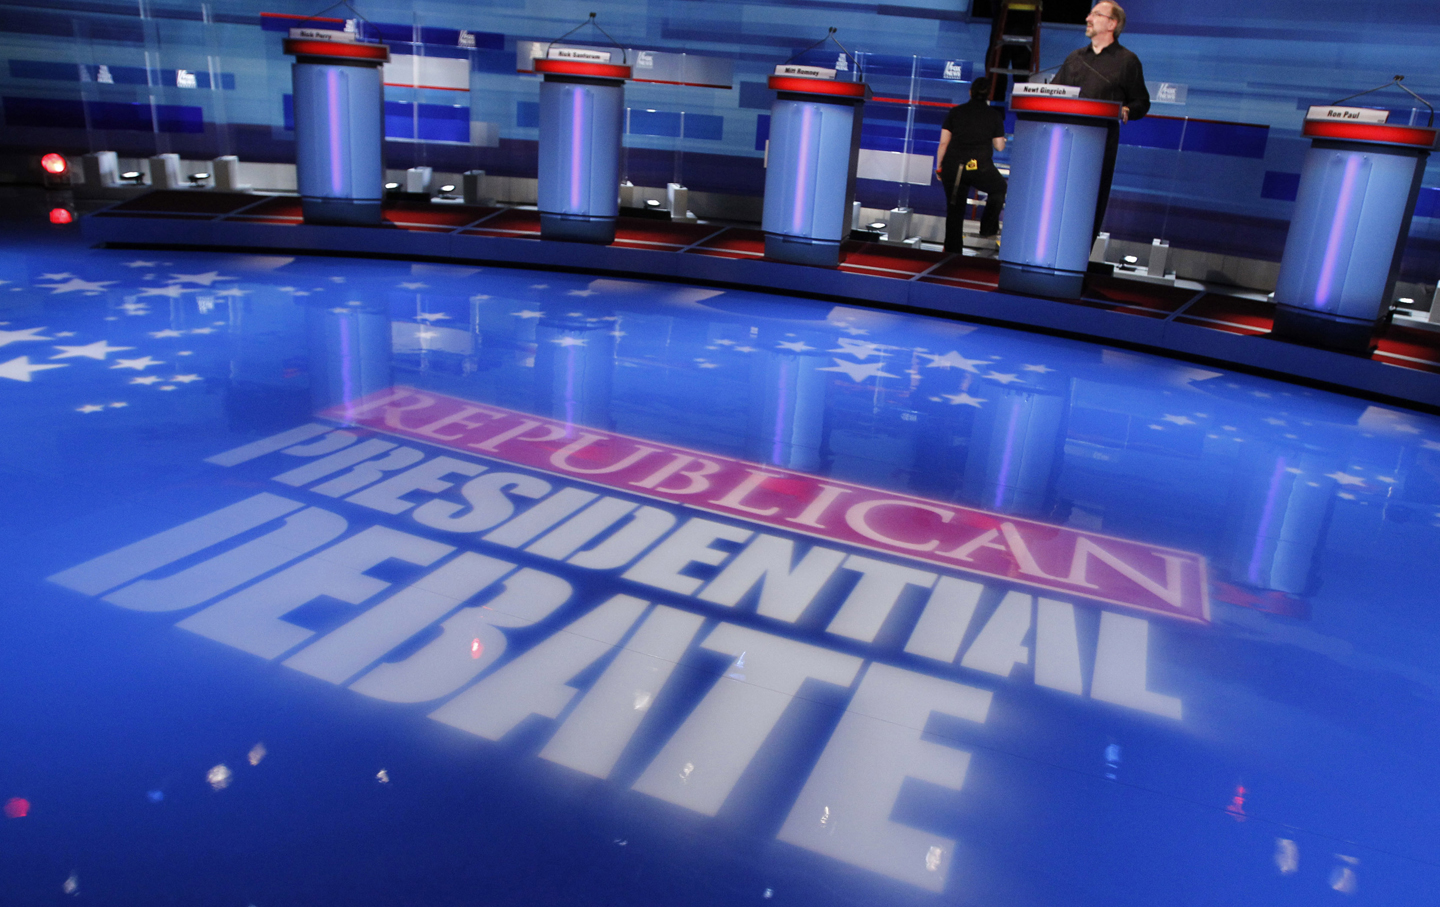 Stage hands prepare for the South Carolina Republican presidential candidates debate in Myrtle Beach